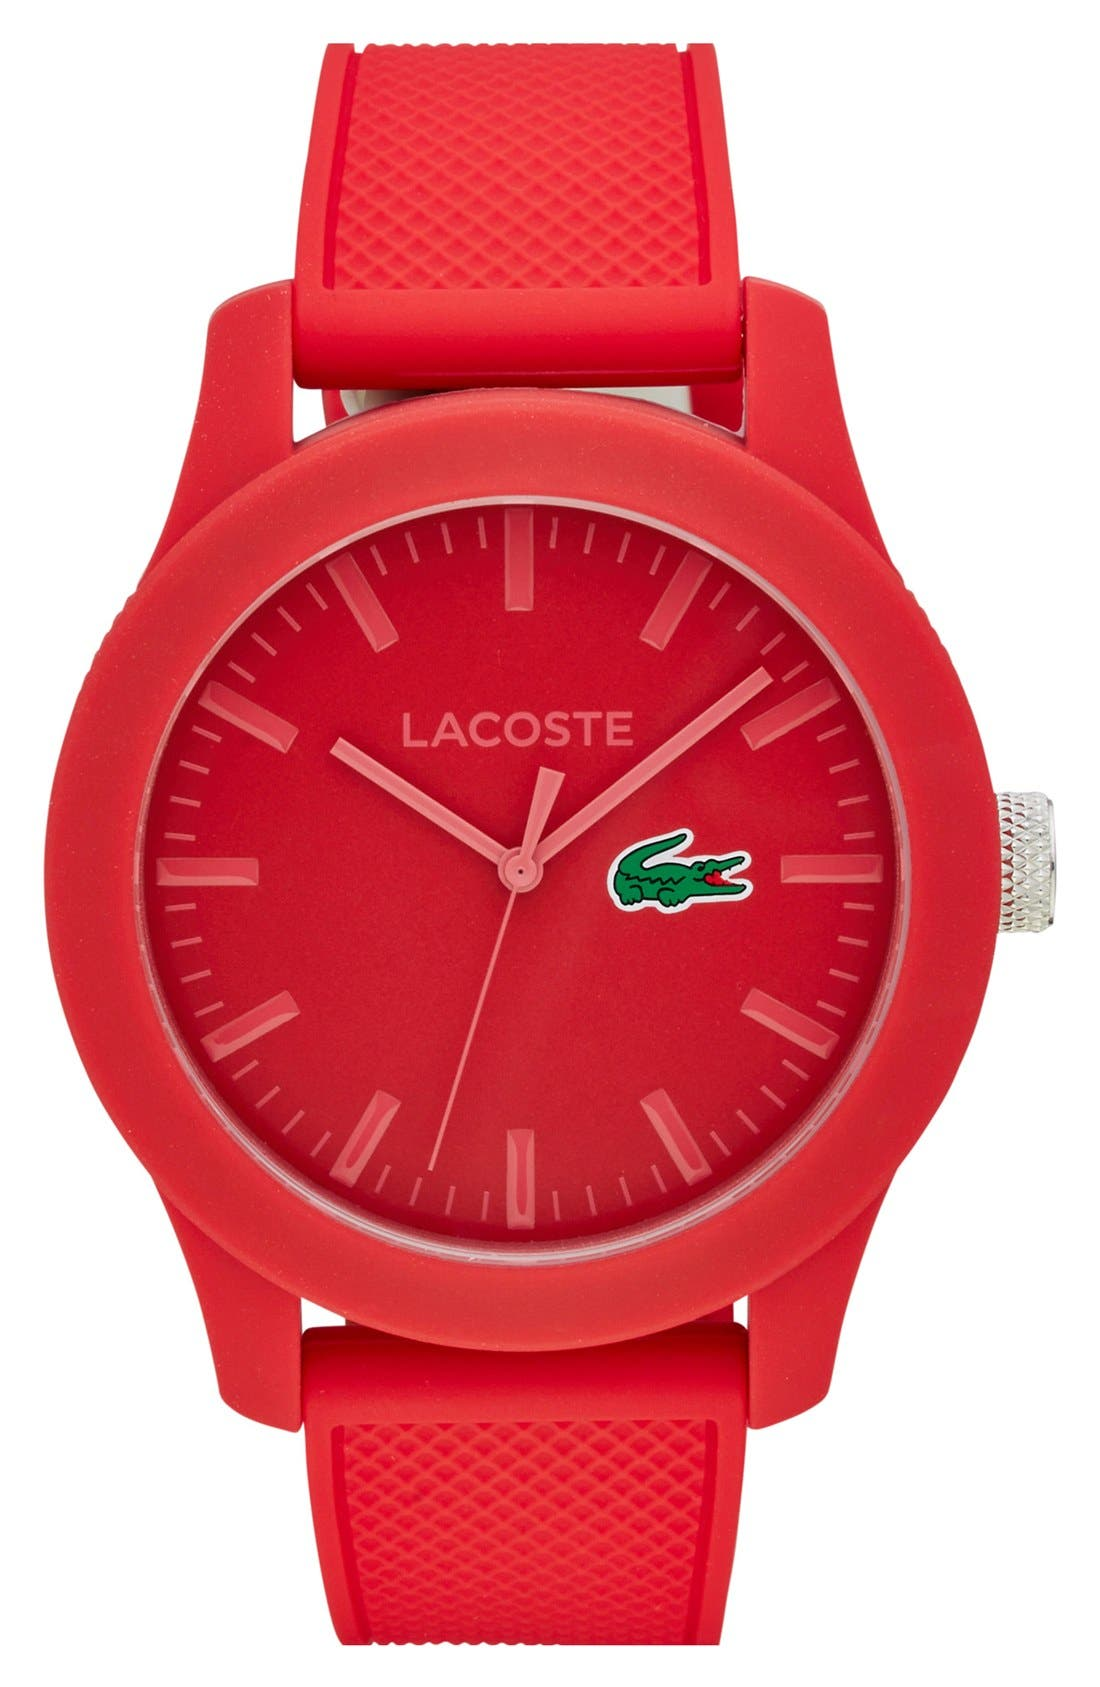 Image of Lacoste Men's 12.12 Sport Watch, 43mm